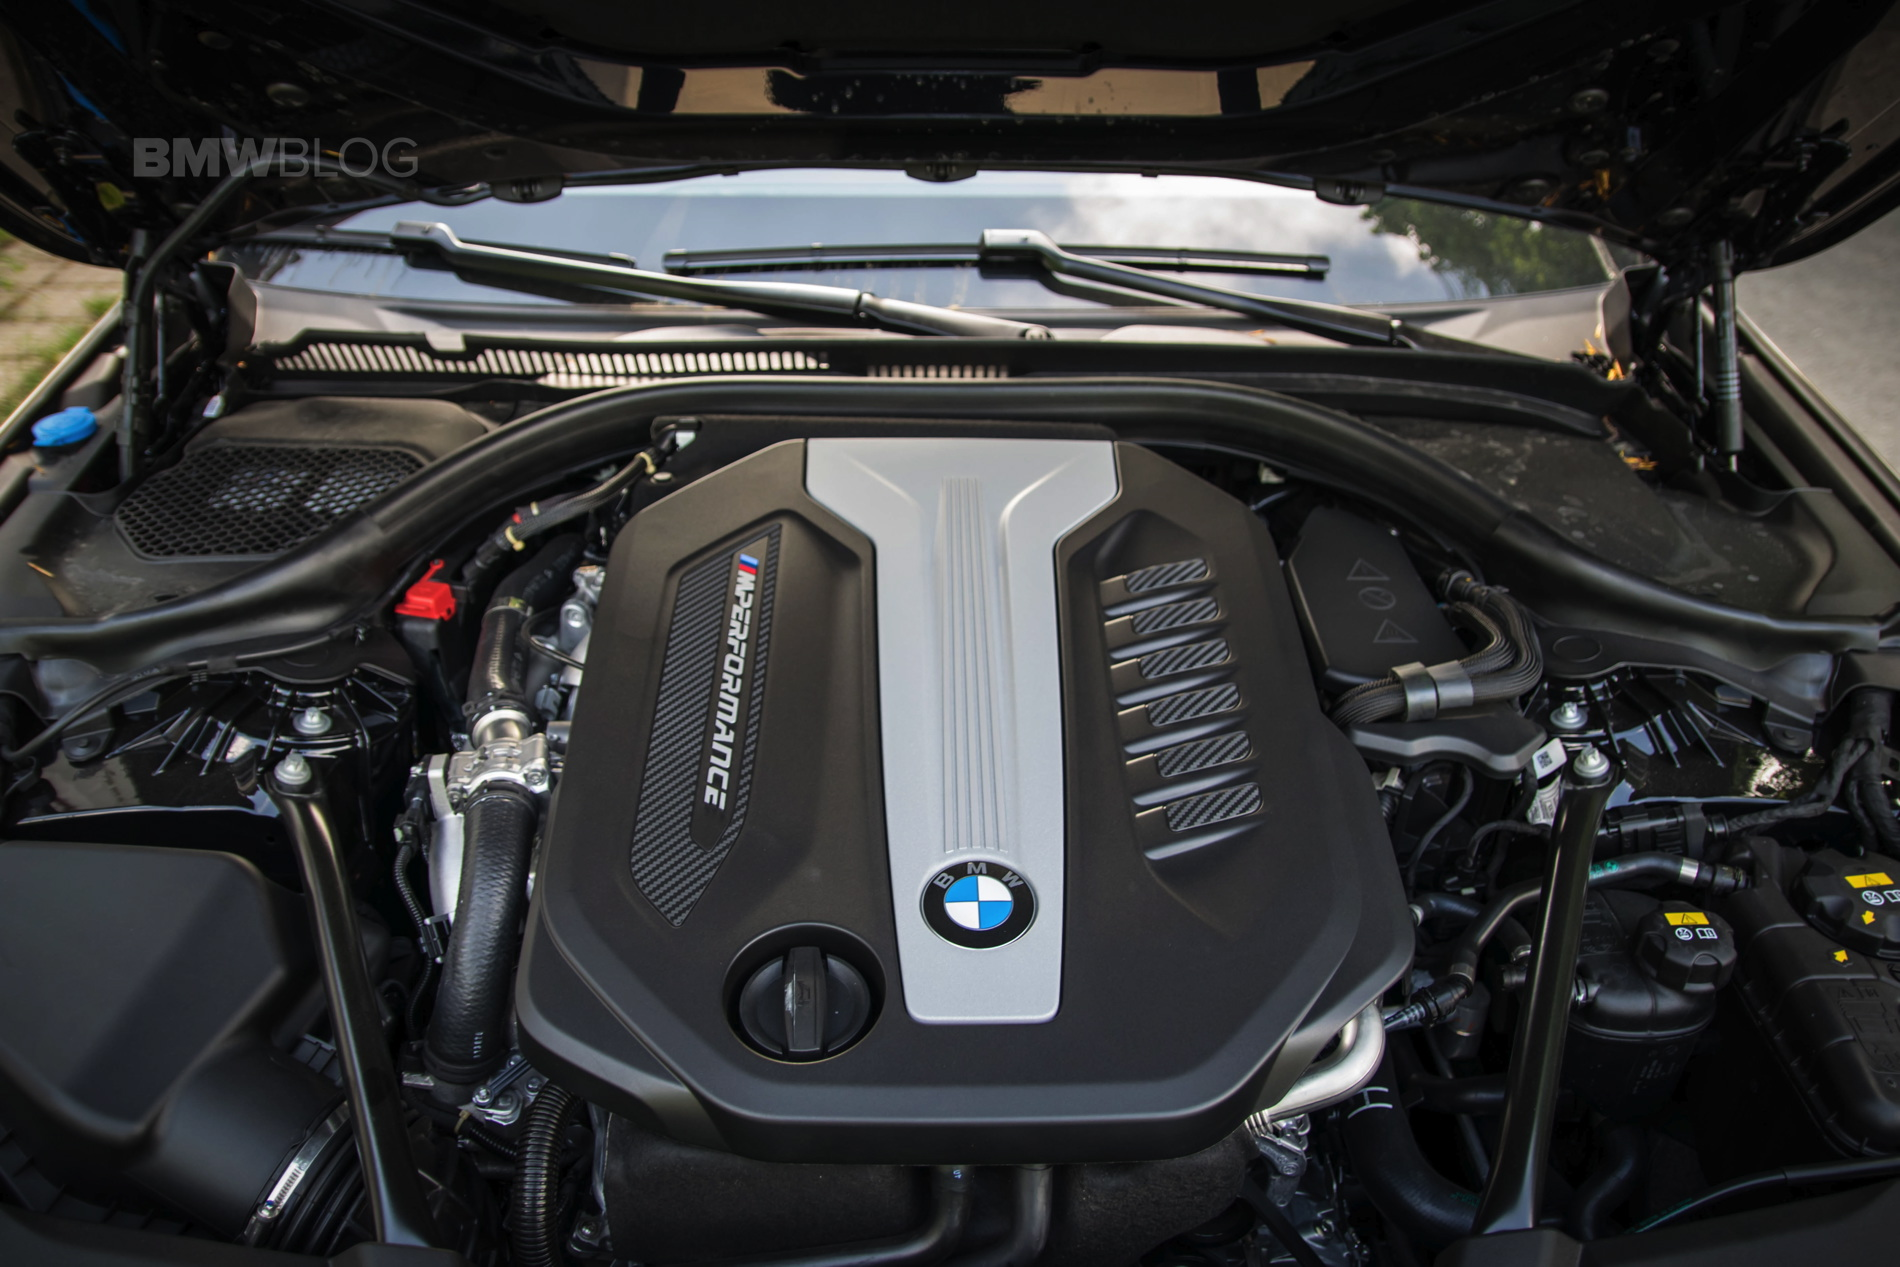 BMW Starts Technical Campaign to Fix Faulty Diesel EGR